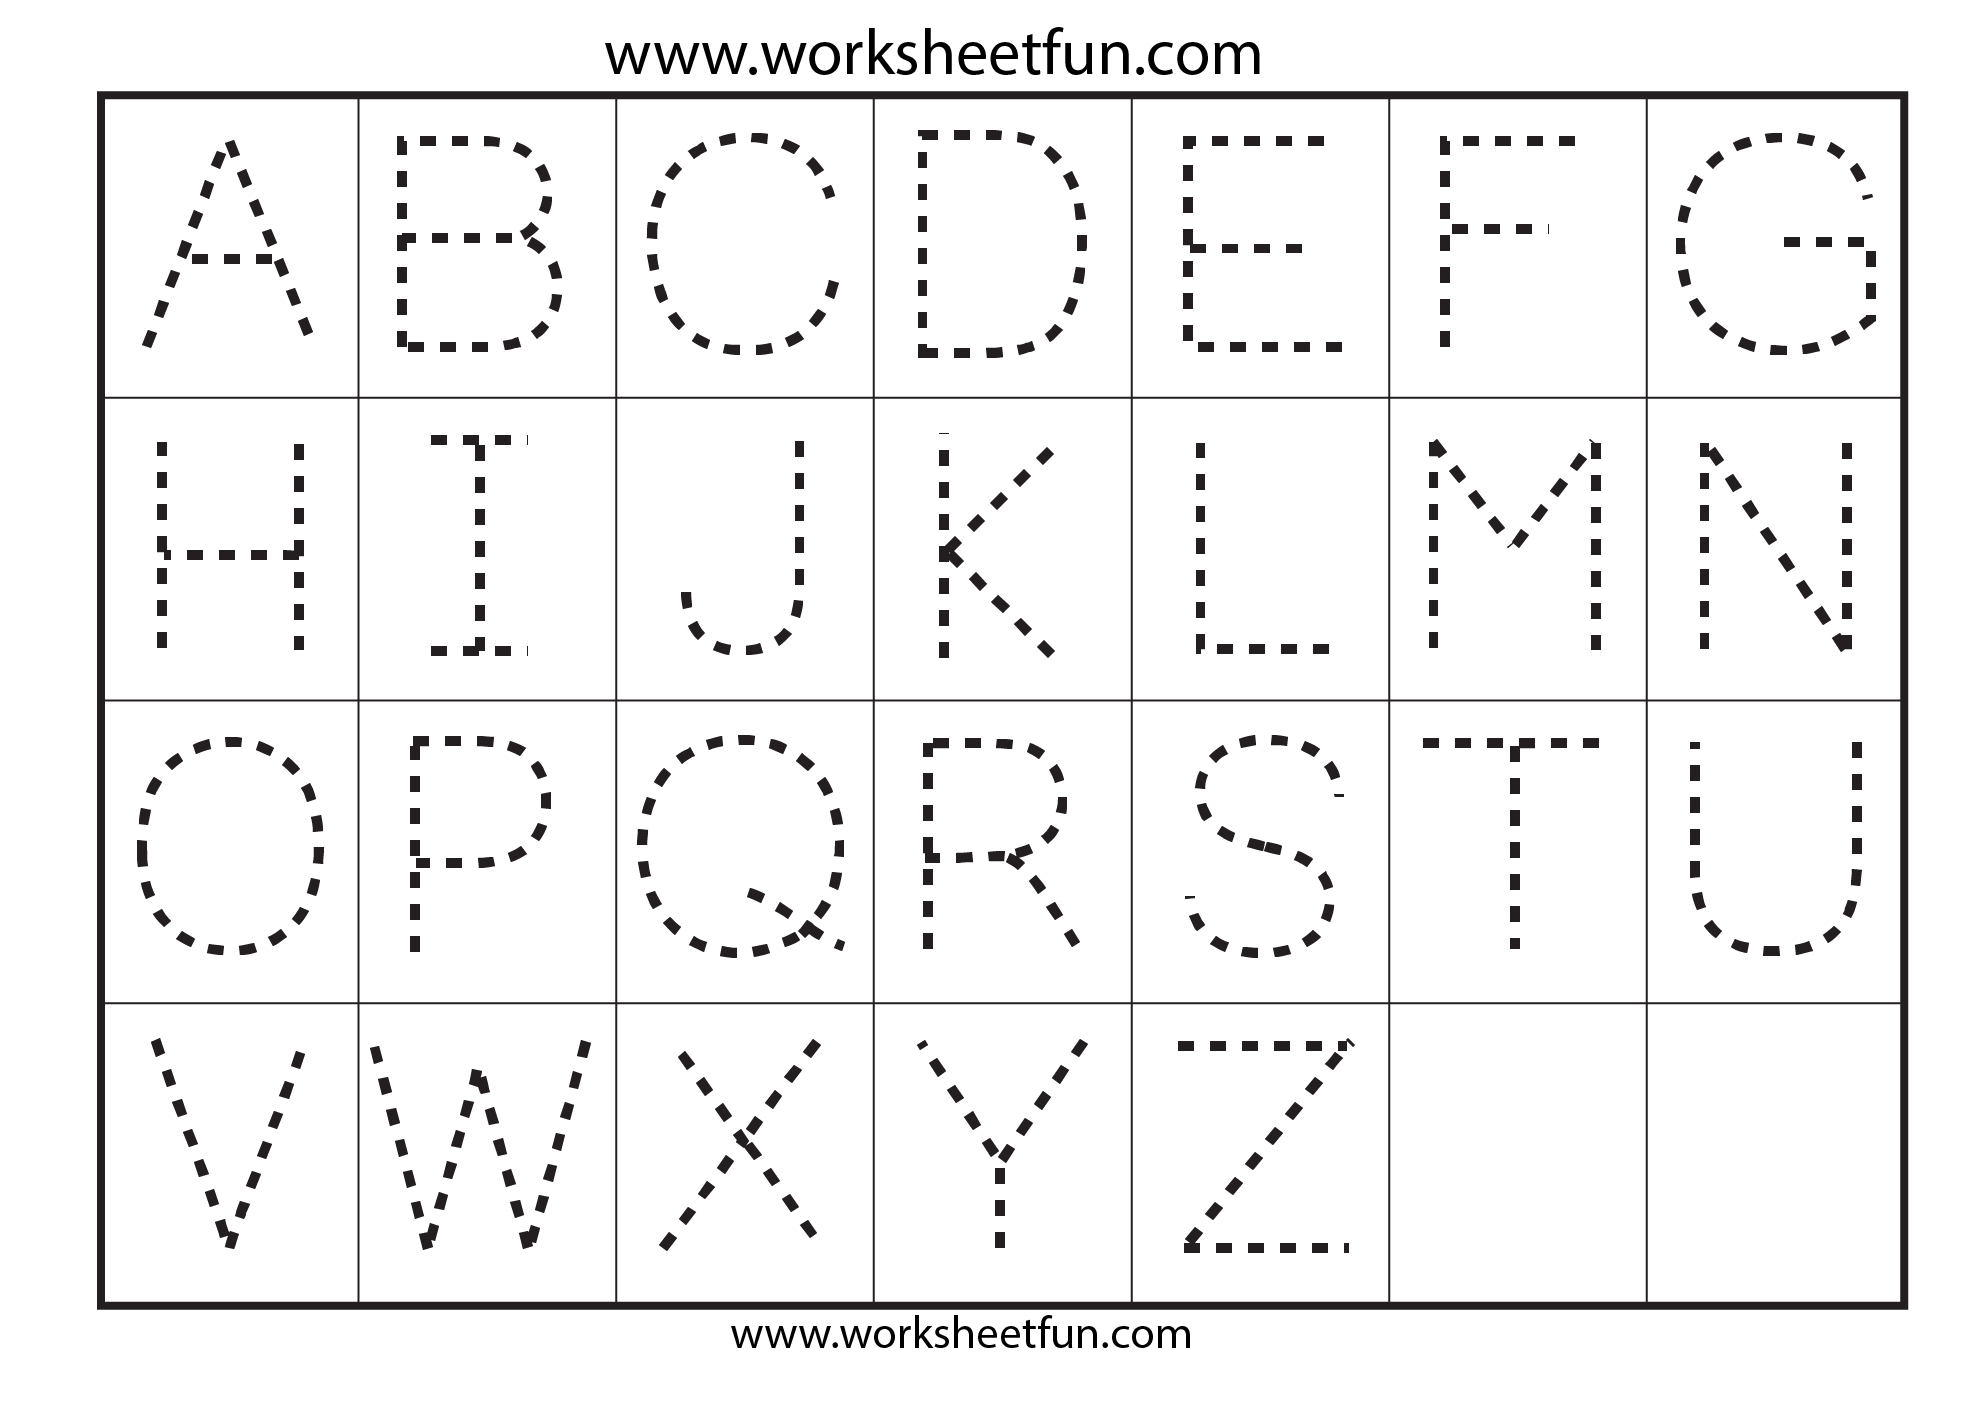 Printables Free Printable Tracing Worksheets For Preschoolers free printable tracing pages for preschoolers preschooler worksheet letters worksheets eetrex printables